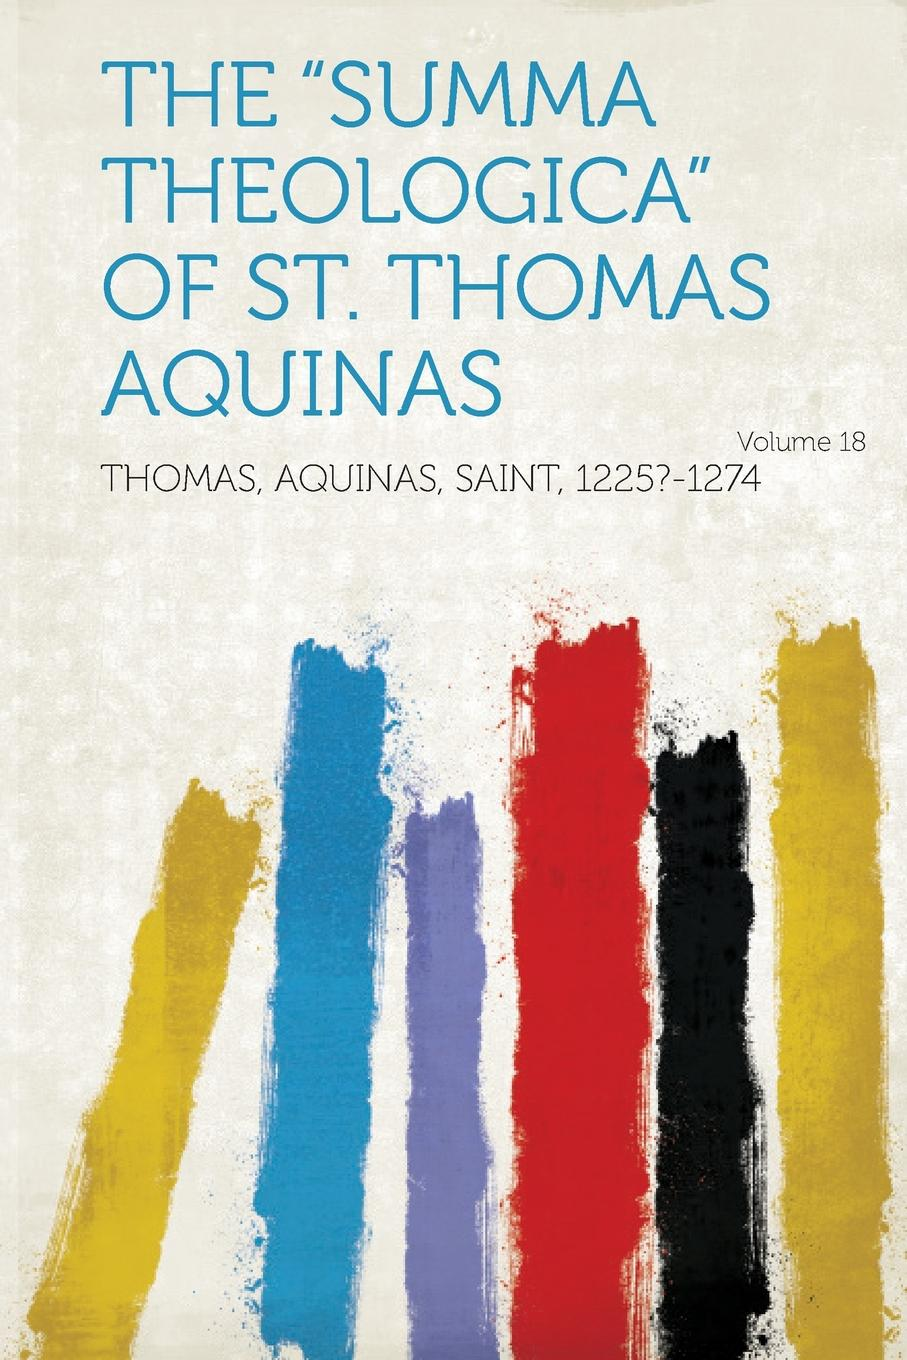 Thomas Aquinas The Summa Theologica of St. Thomas Aquinas Volume 18 aquinas saint thomas aquinas ethicus or the moral teaching of st thomas a translation of the principle portions of the second part of the summa theologica with notes